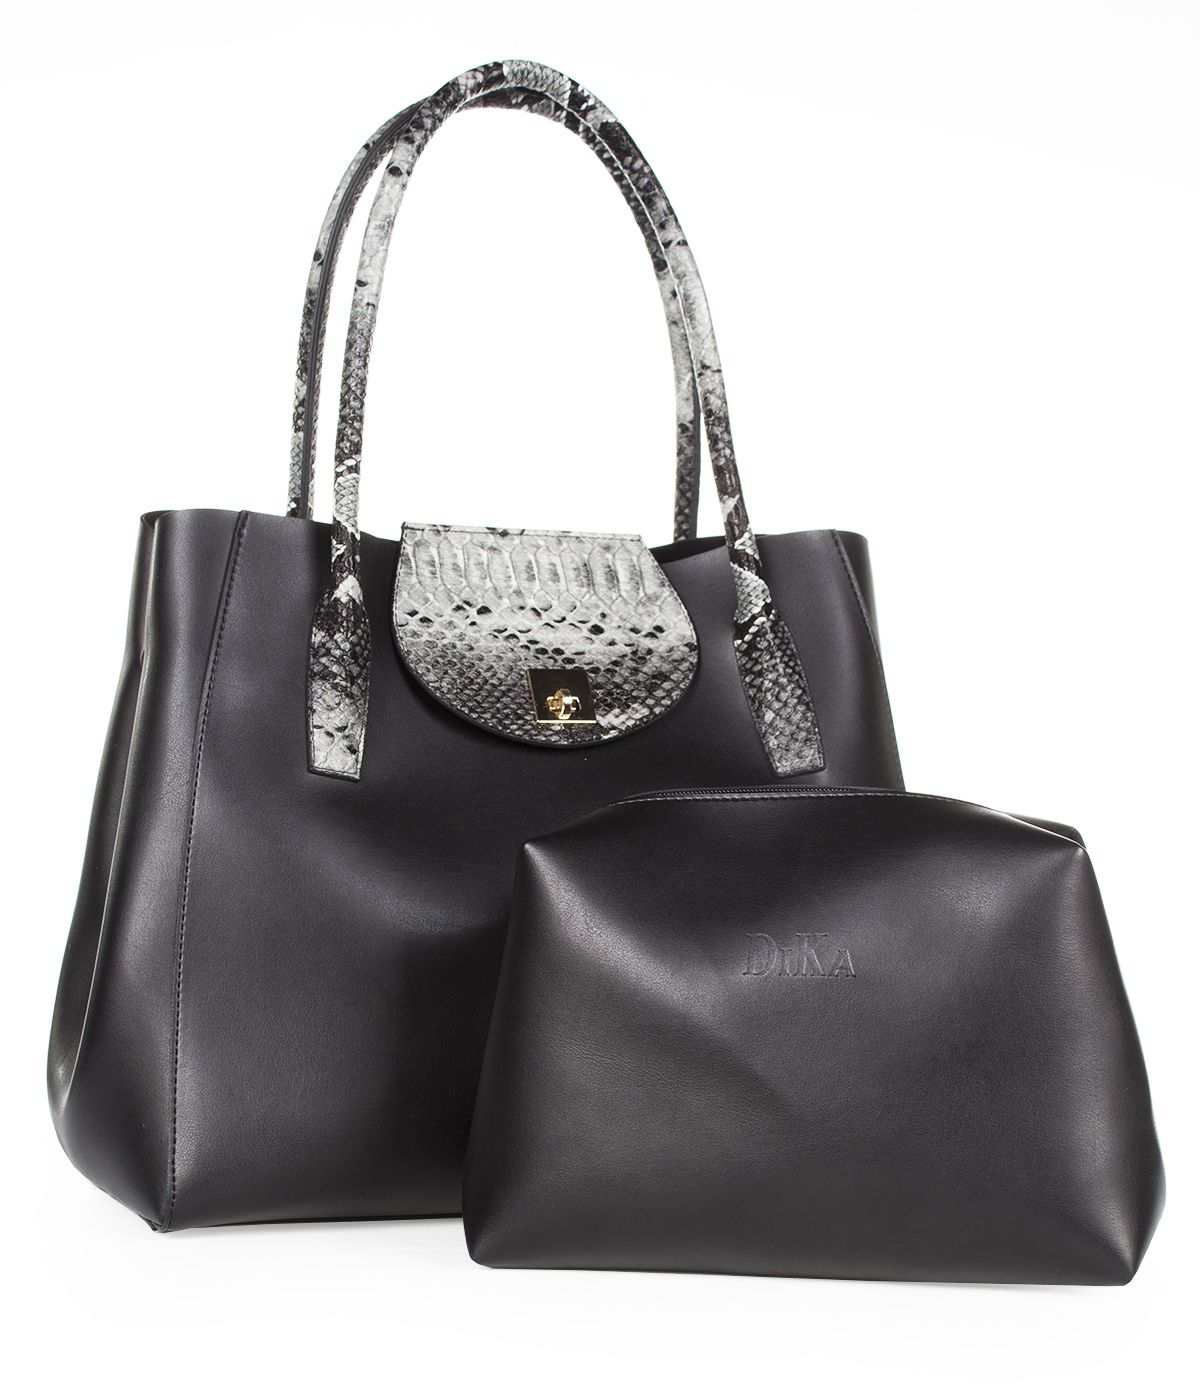 LEATHER BAG WITH SNAKE SKIN IMITATION  2